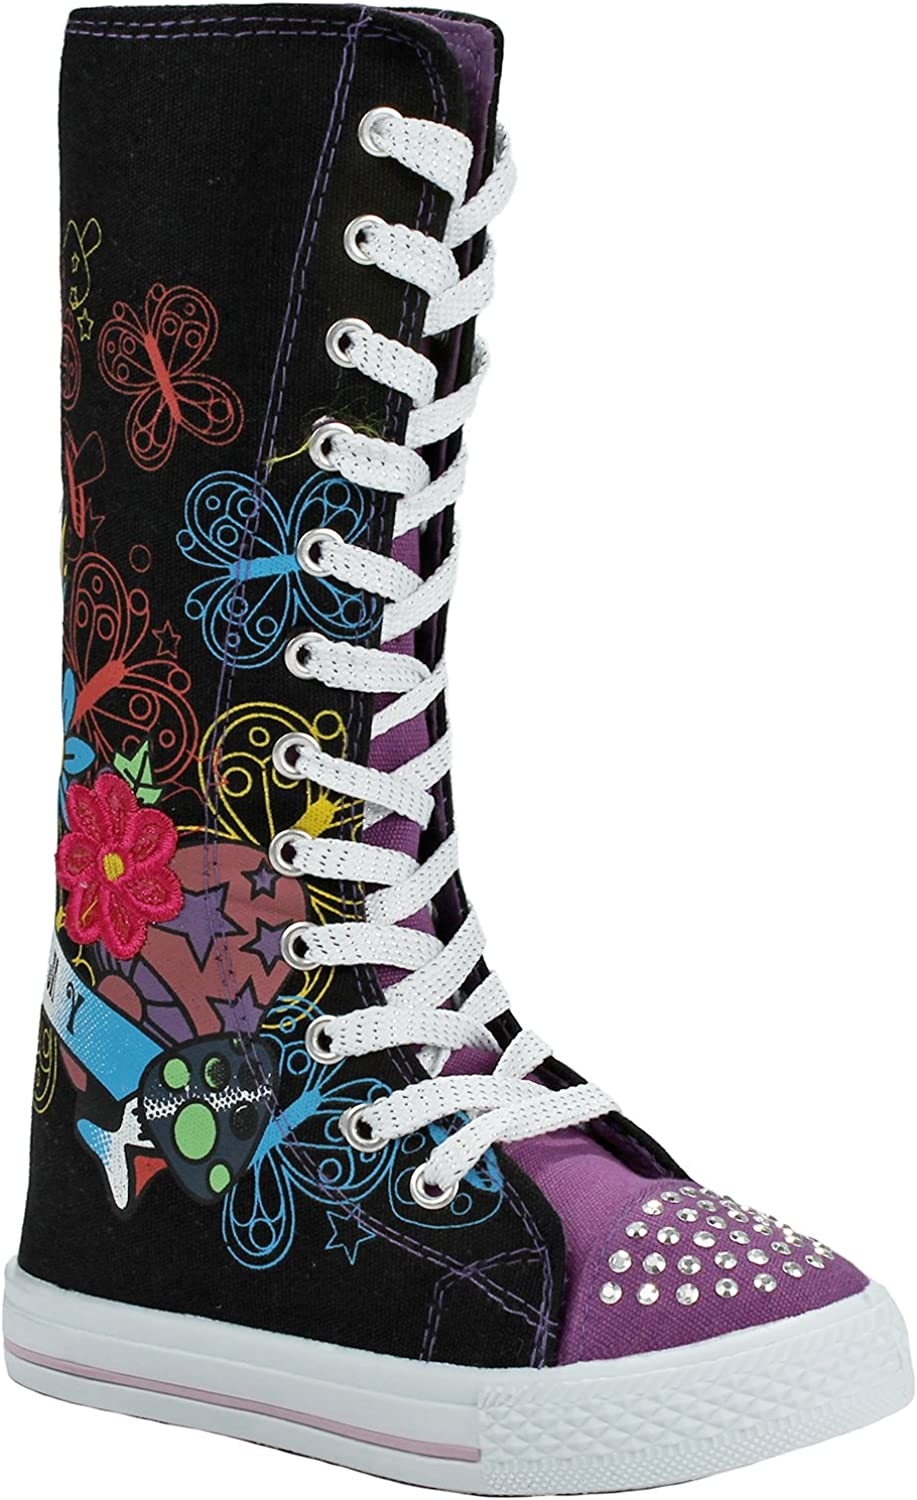 Girls Fashion Punk Sneakers Butterfly Floral Pattern Sequins Lace-up Zip High Top Canvas Boots